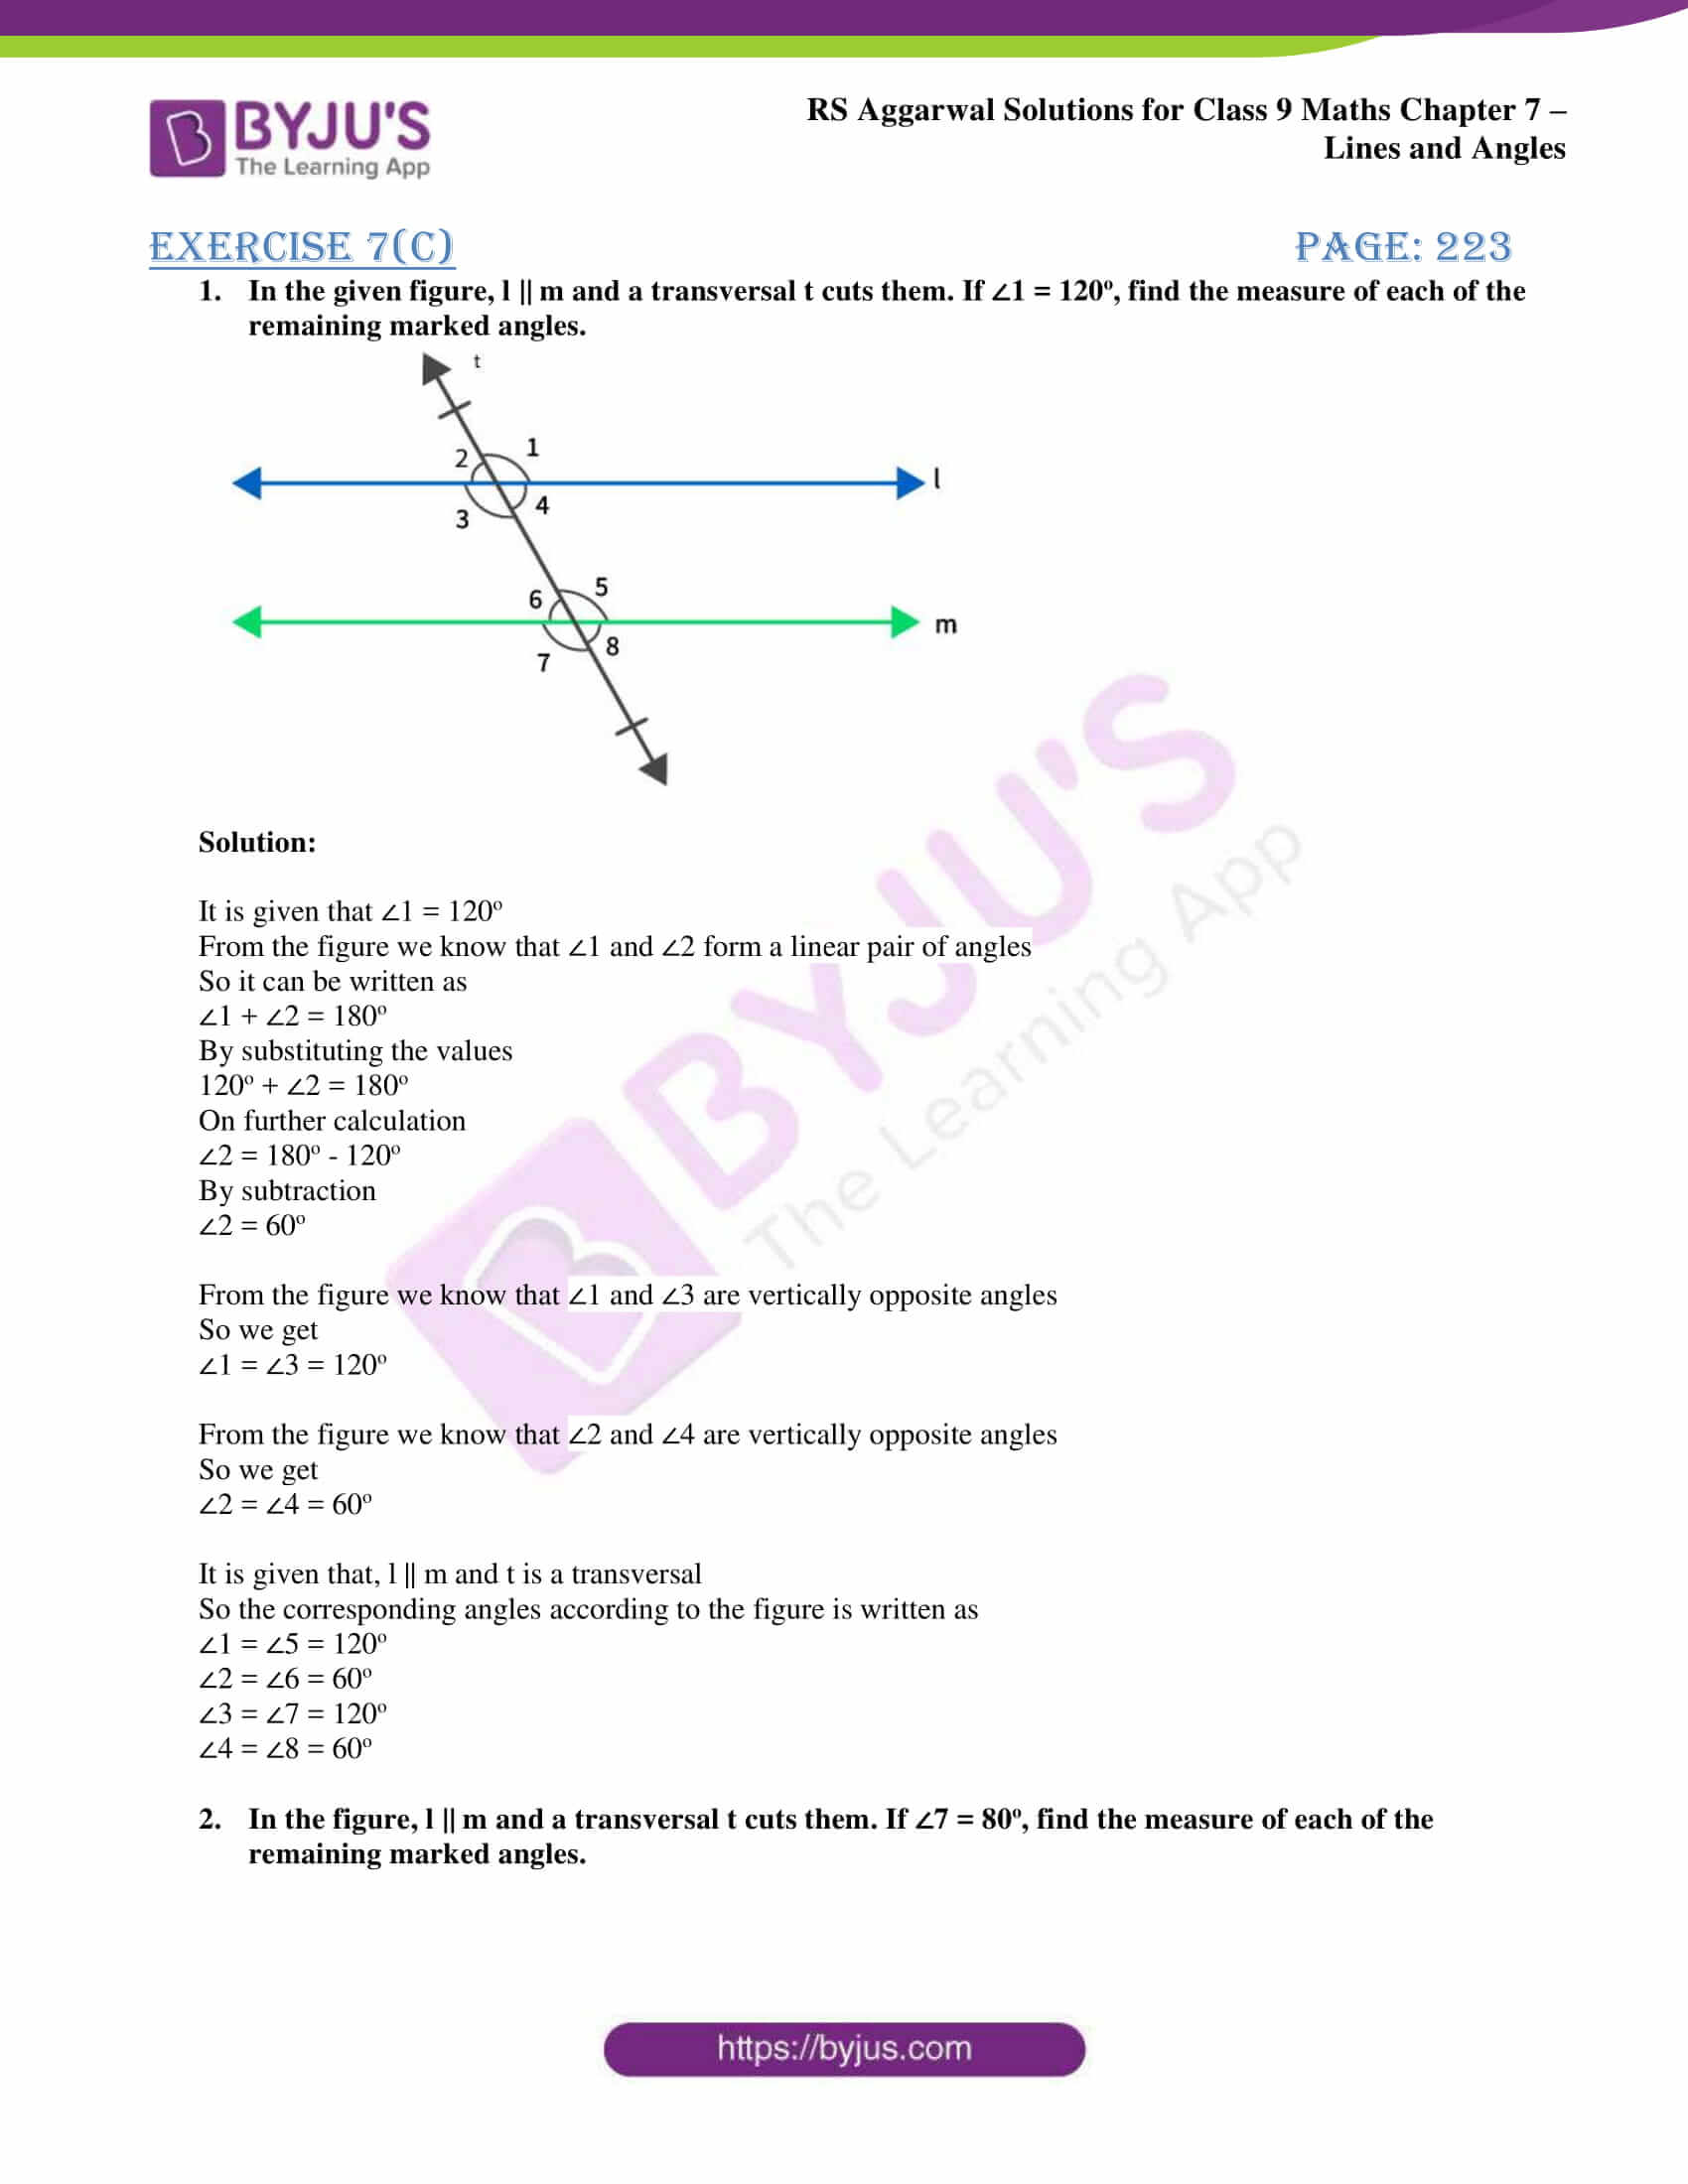 RS Aggarwal Solutions for Class 9 Chapter 7: Lines and Angles